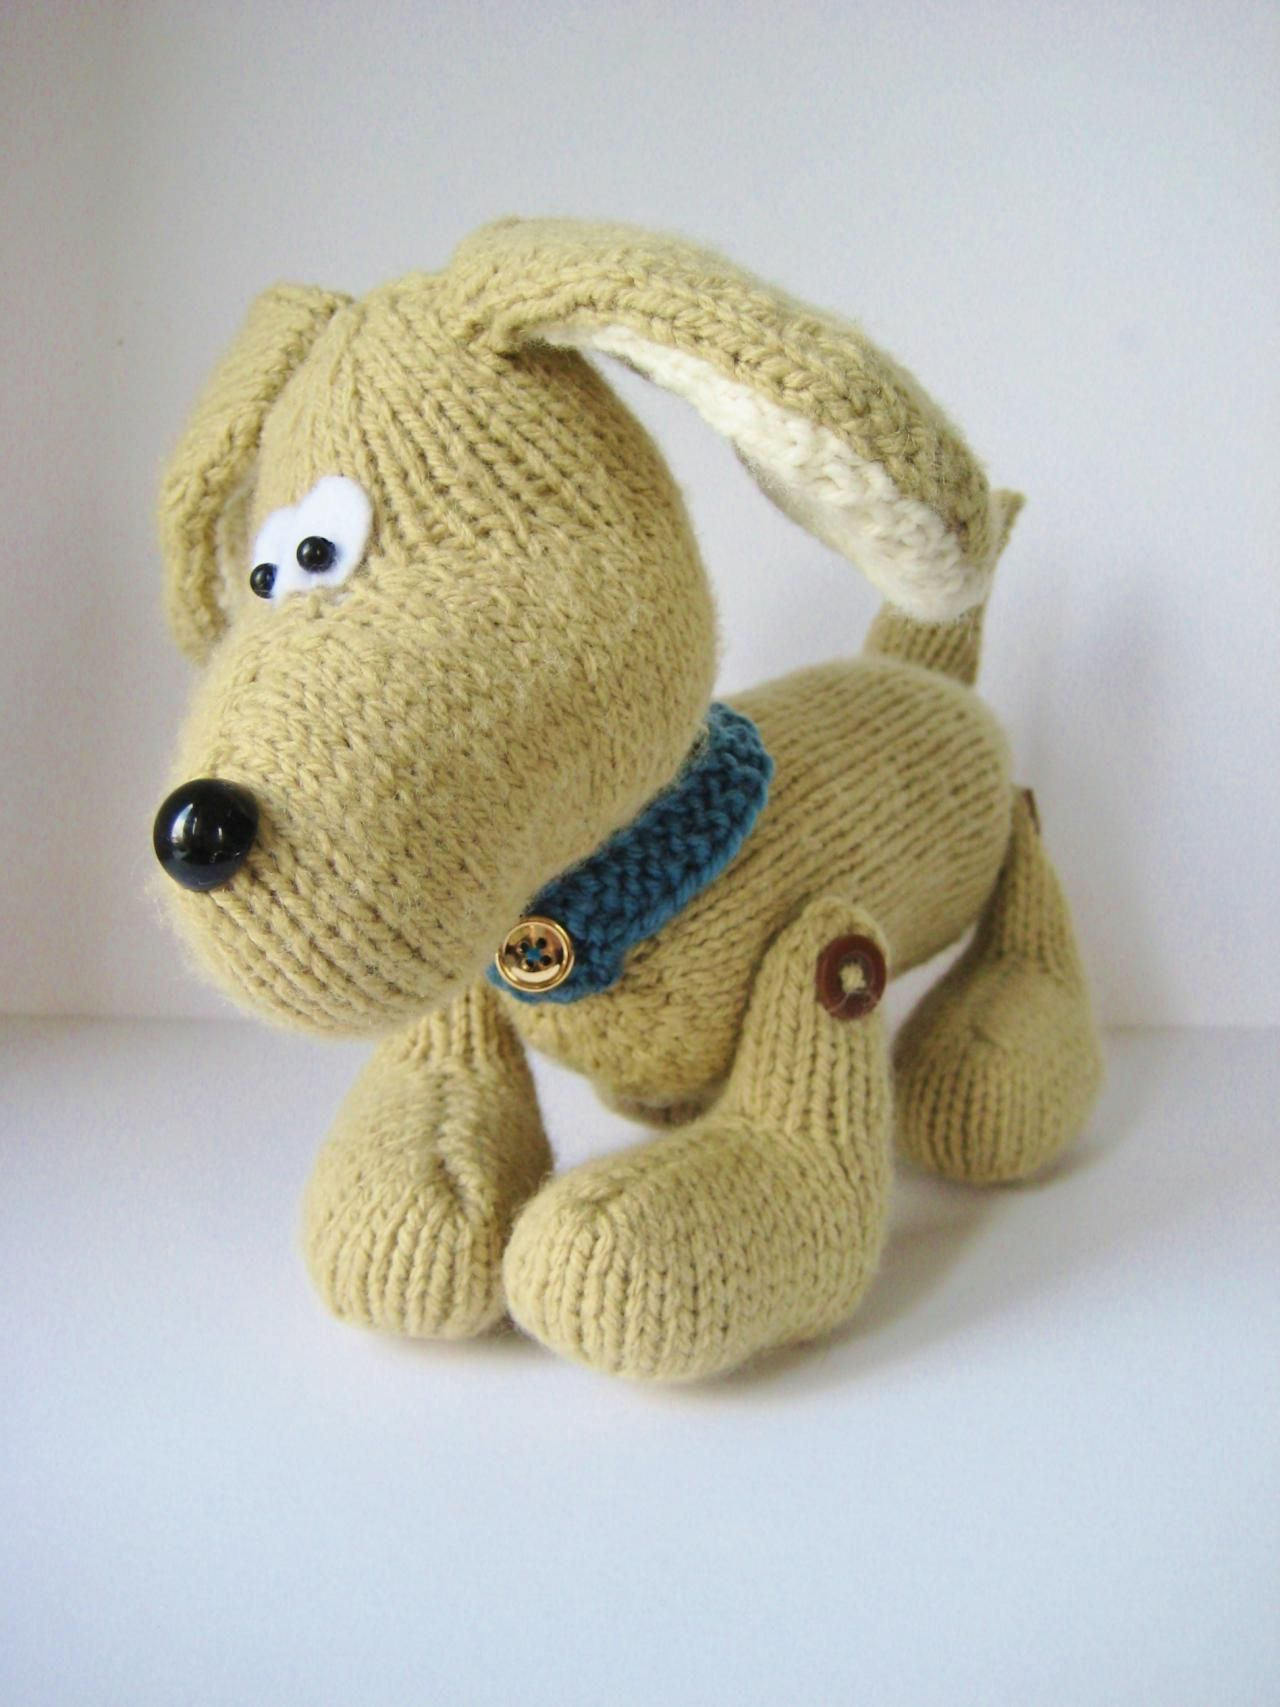 Biscuit the Dog toy knitting pattern | perro amigurumi | Pinterest ...